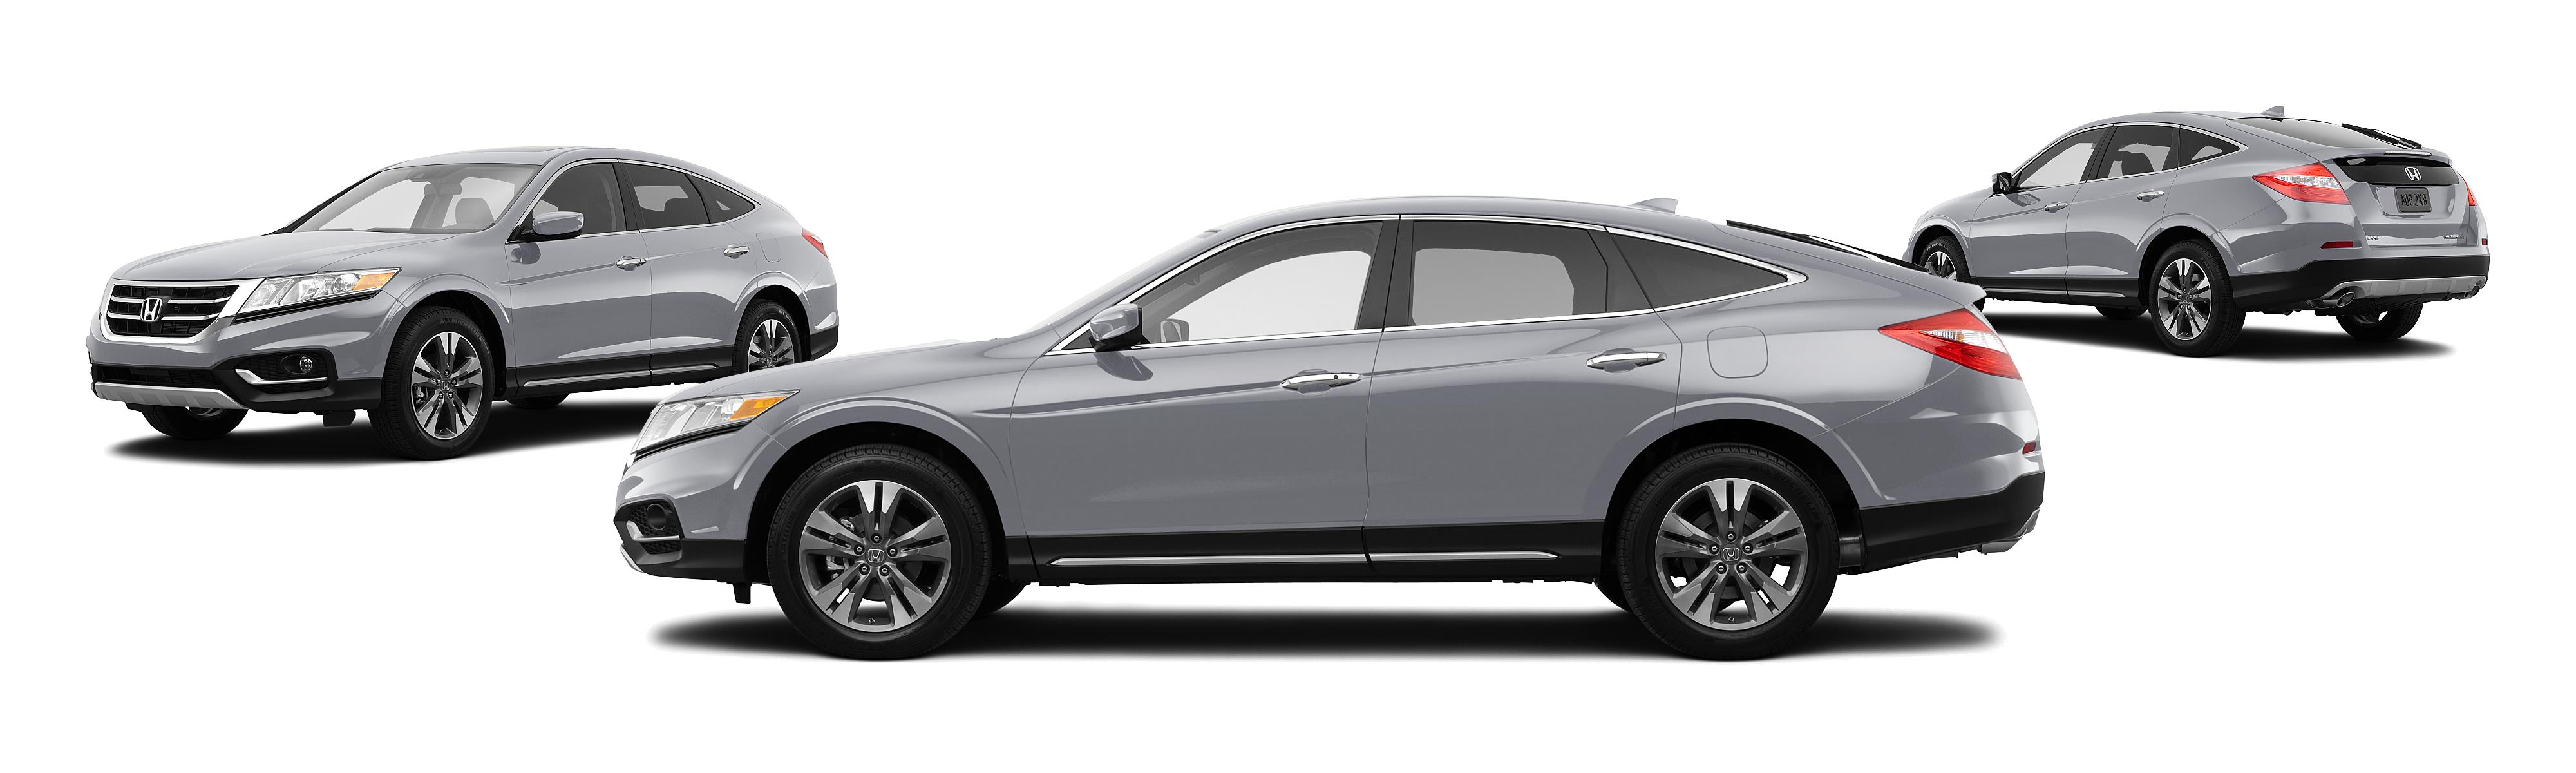 articles makes honda used crosstour photos informations accord